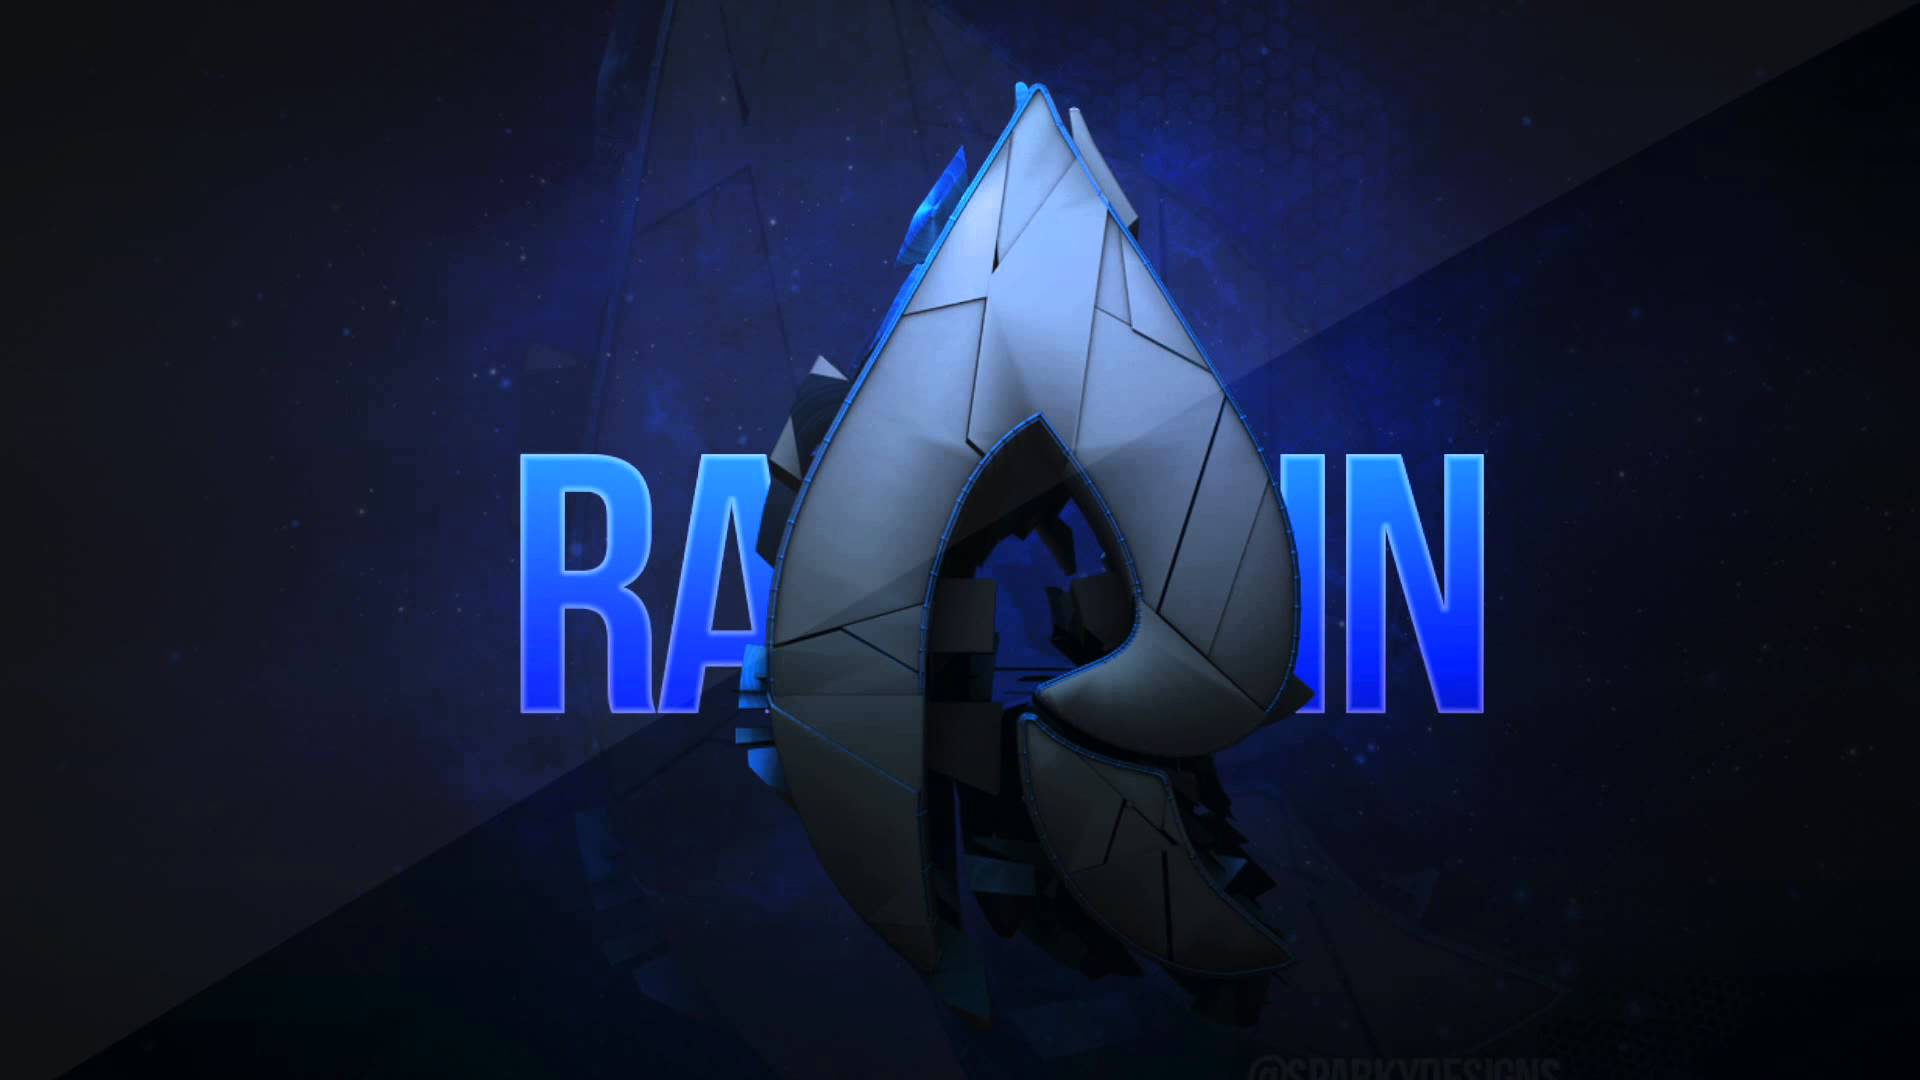 FaZe Rain Desktop Background Speed Art By Sparky 1920x1080